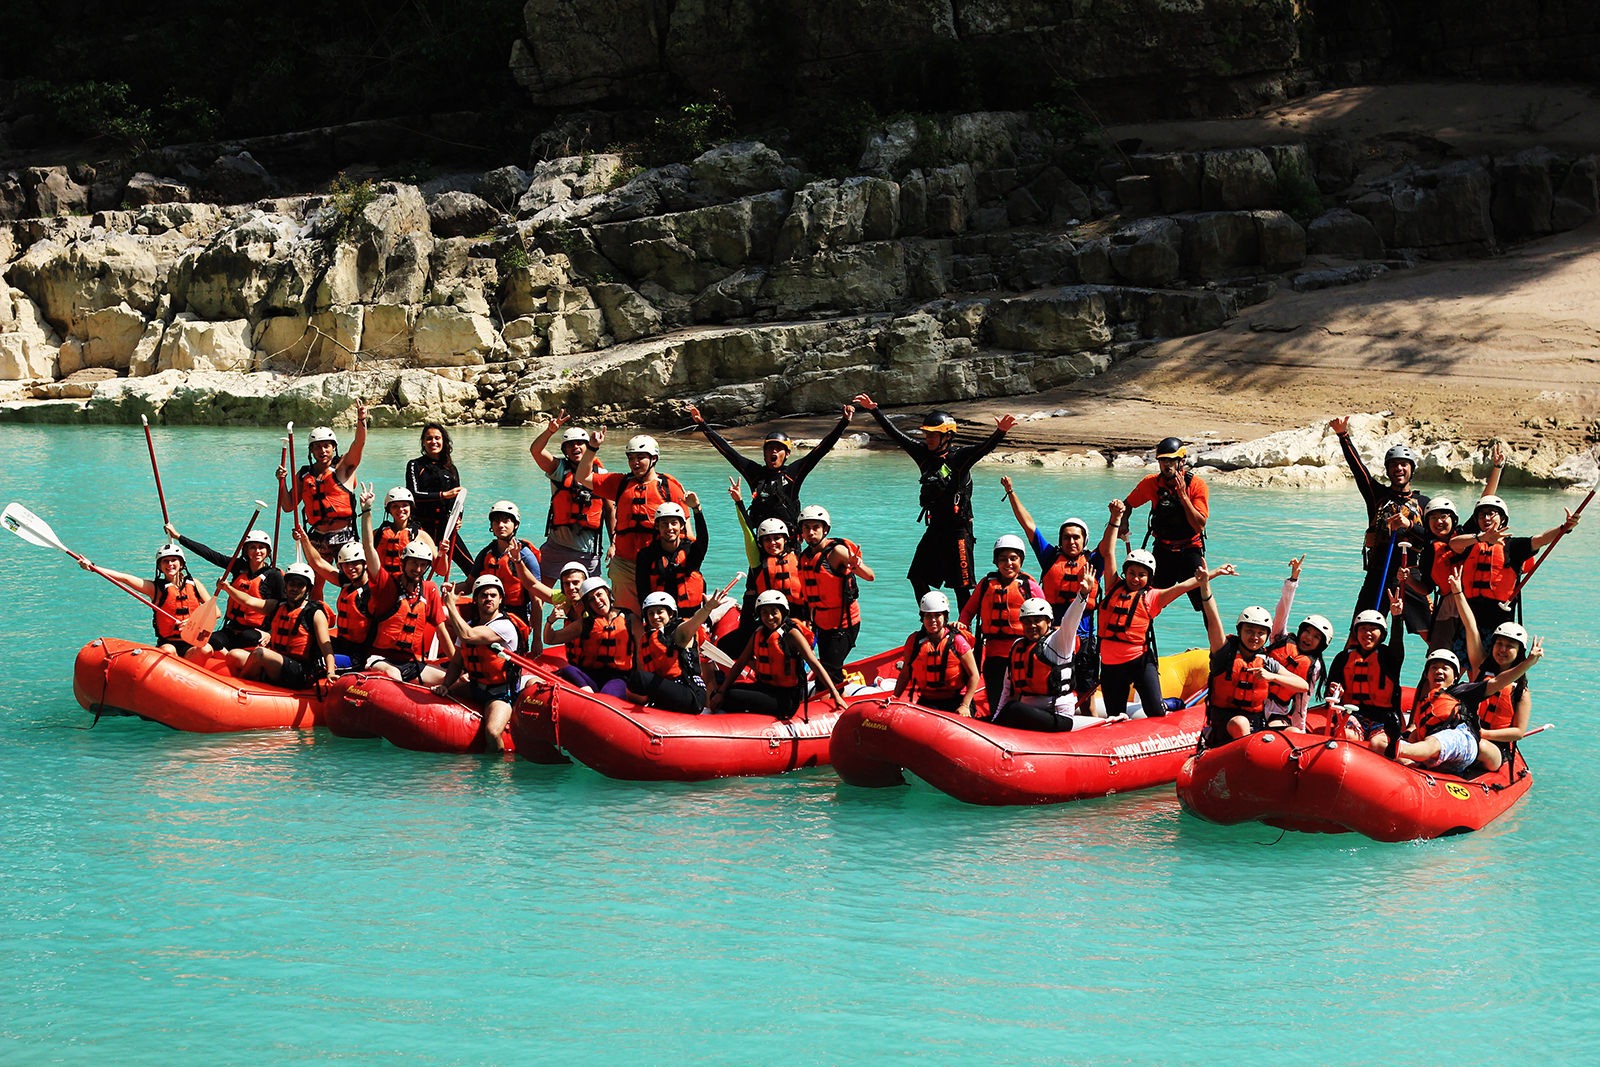 Ruta Huasteca activities image